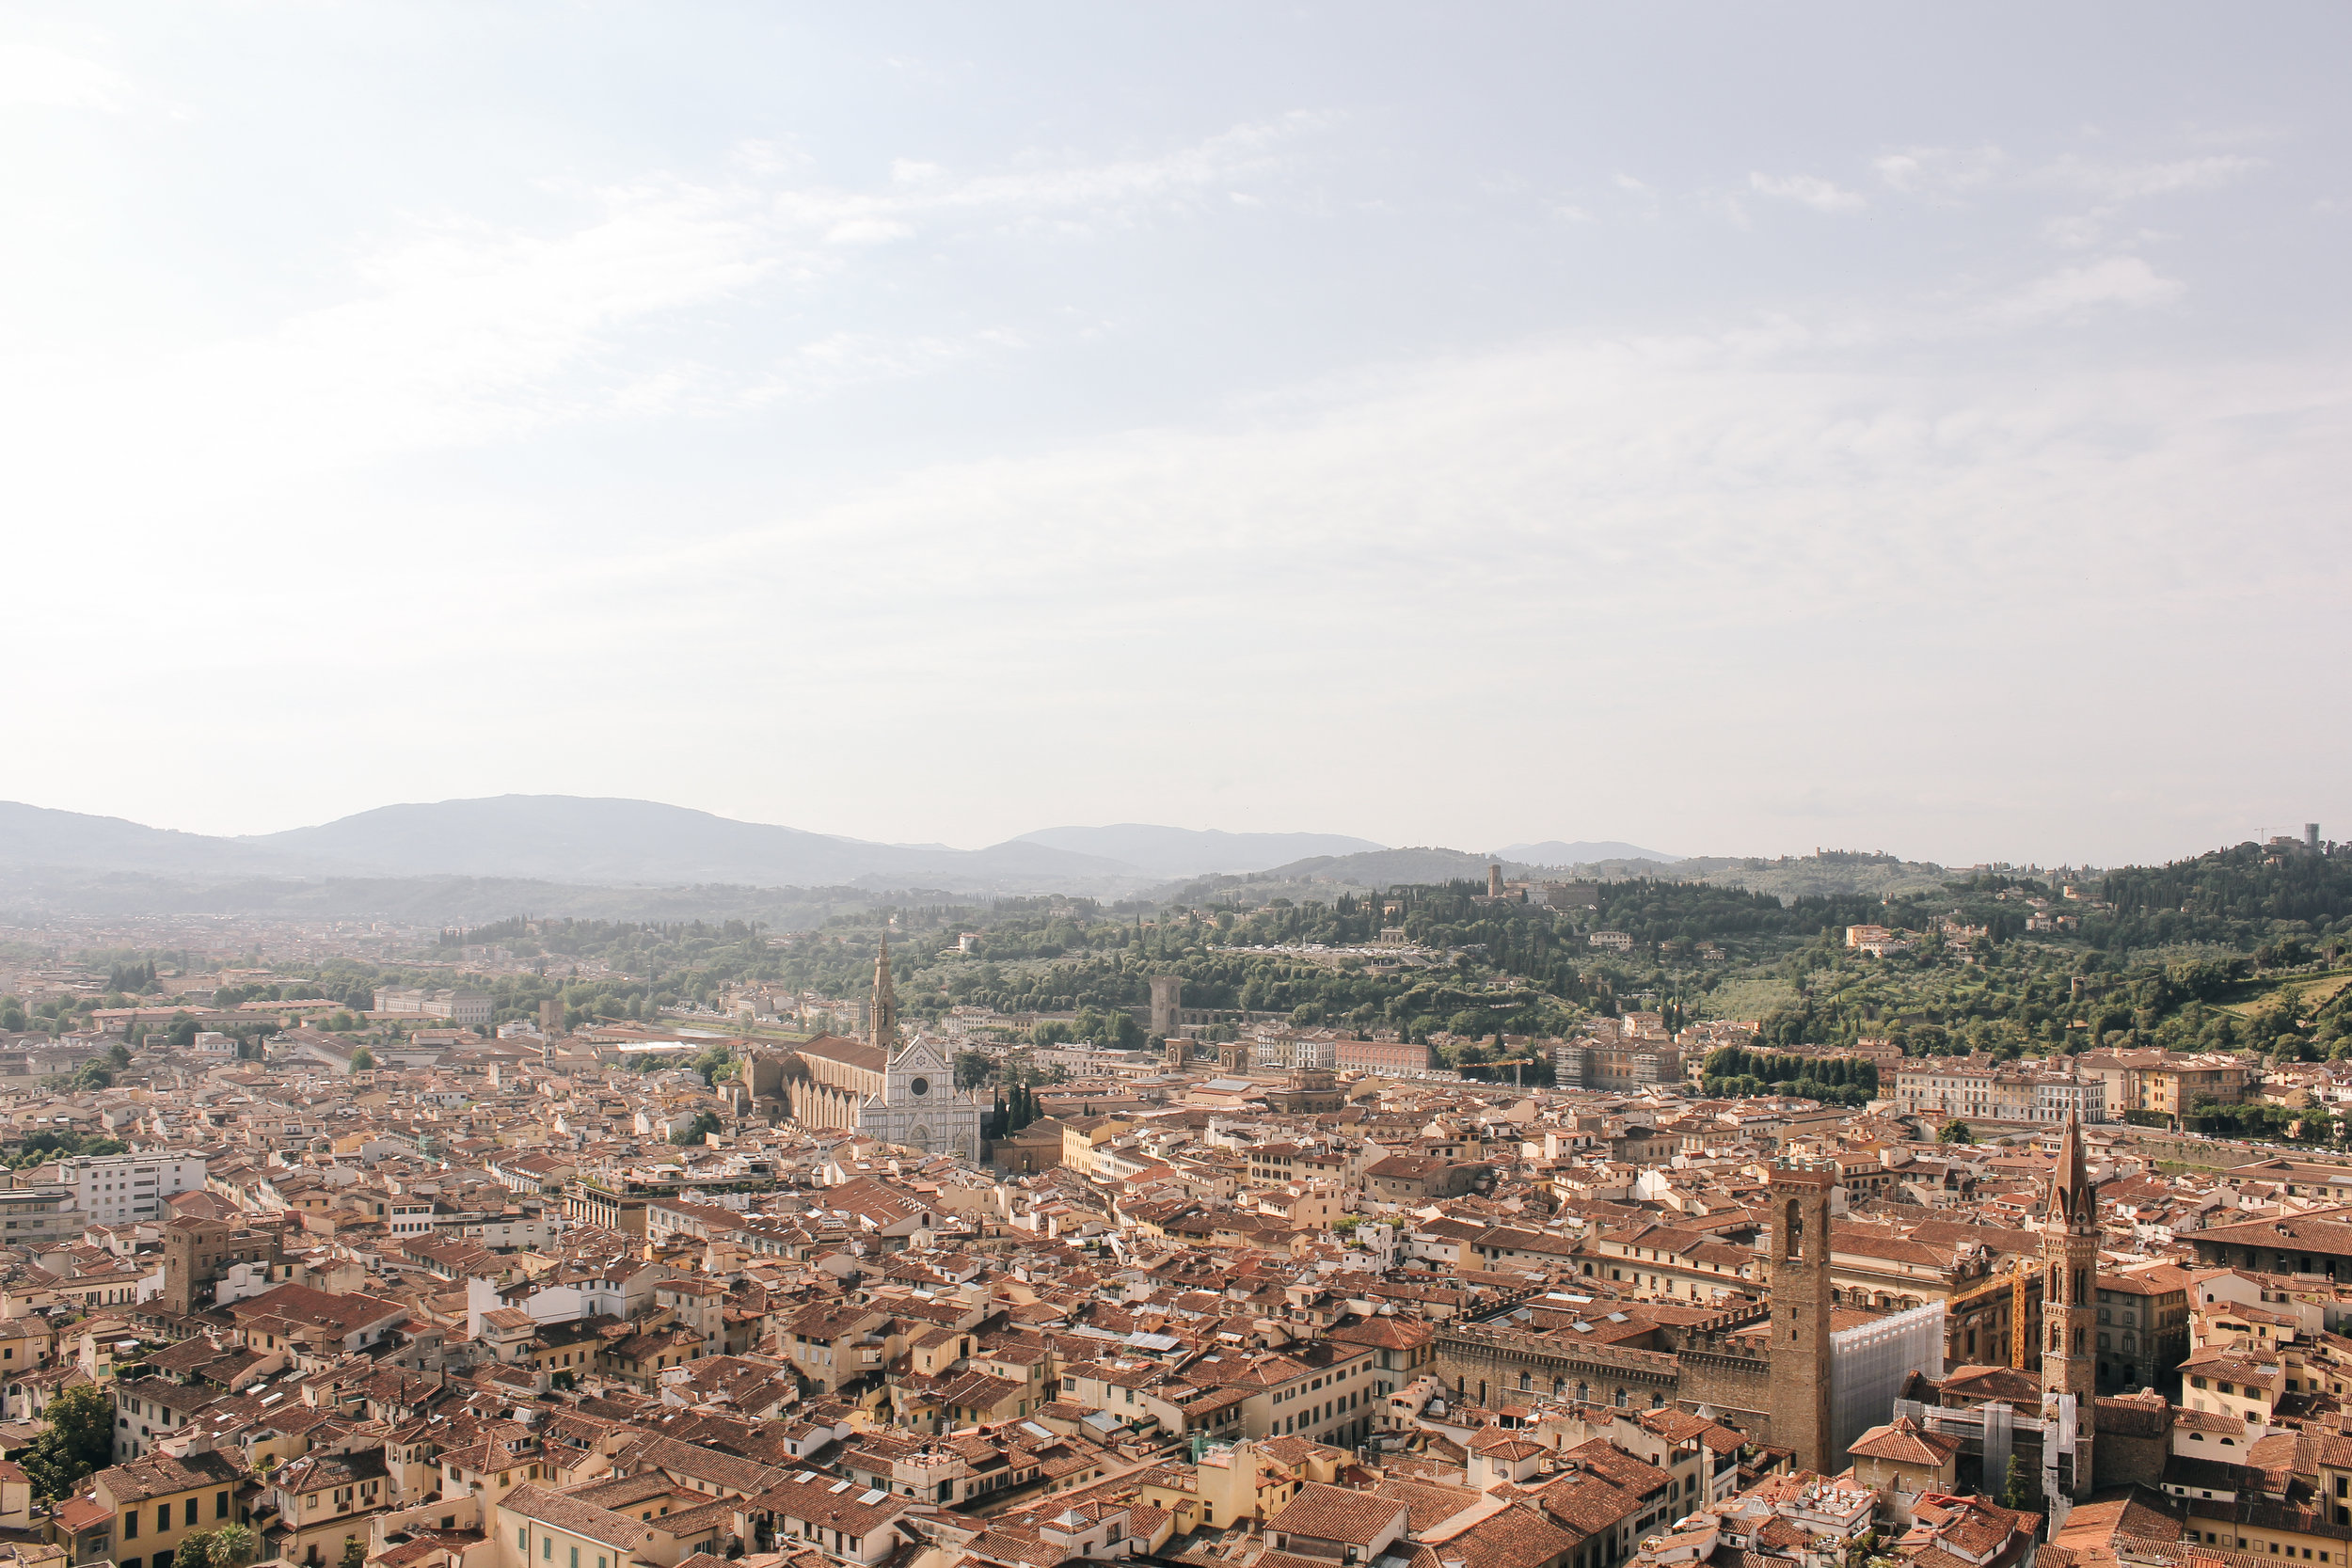 Florence viewed from on top of Duomo di Firenze